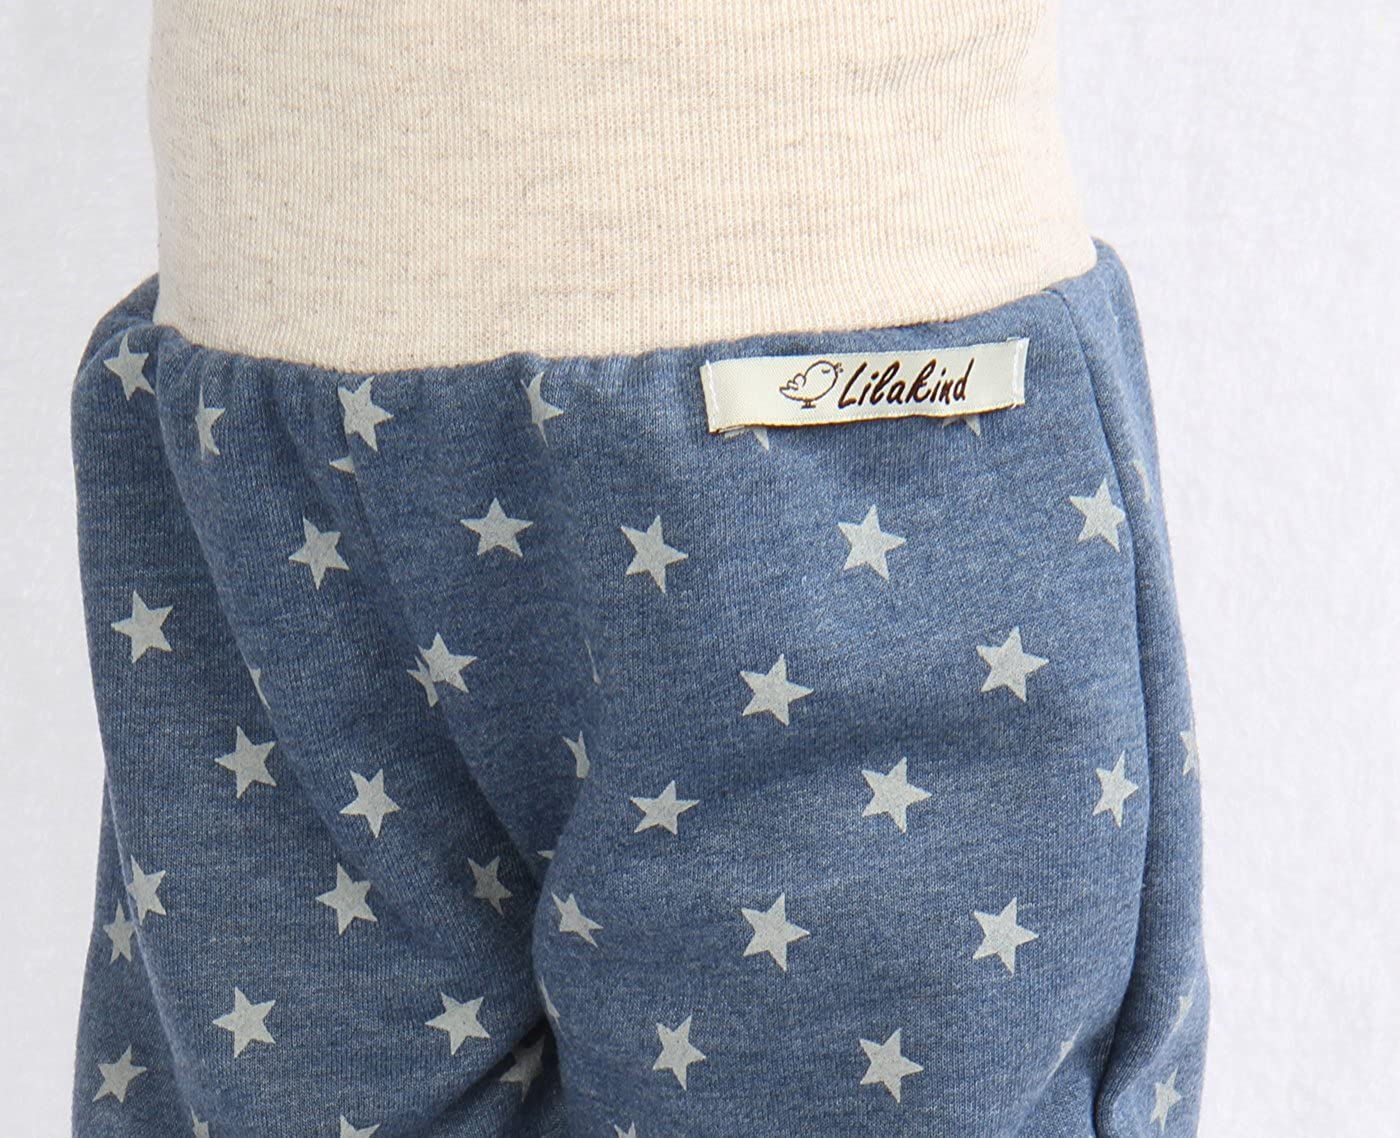 Made in Germany Lilakind Pumphose Hose Babyhose Jersey Sweat Jeansblau Sterne